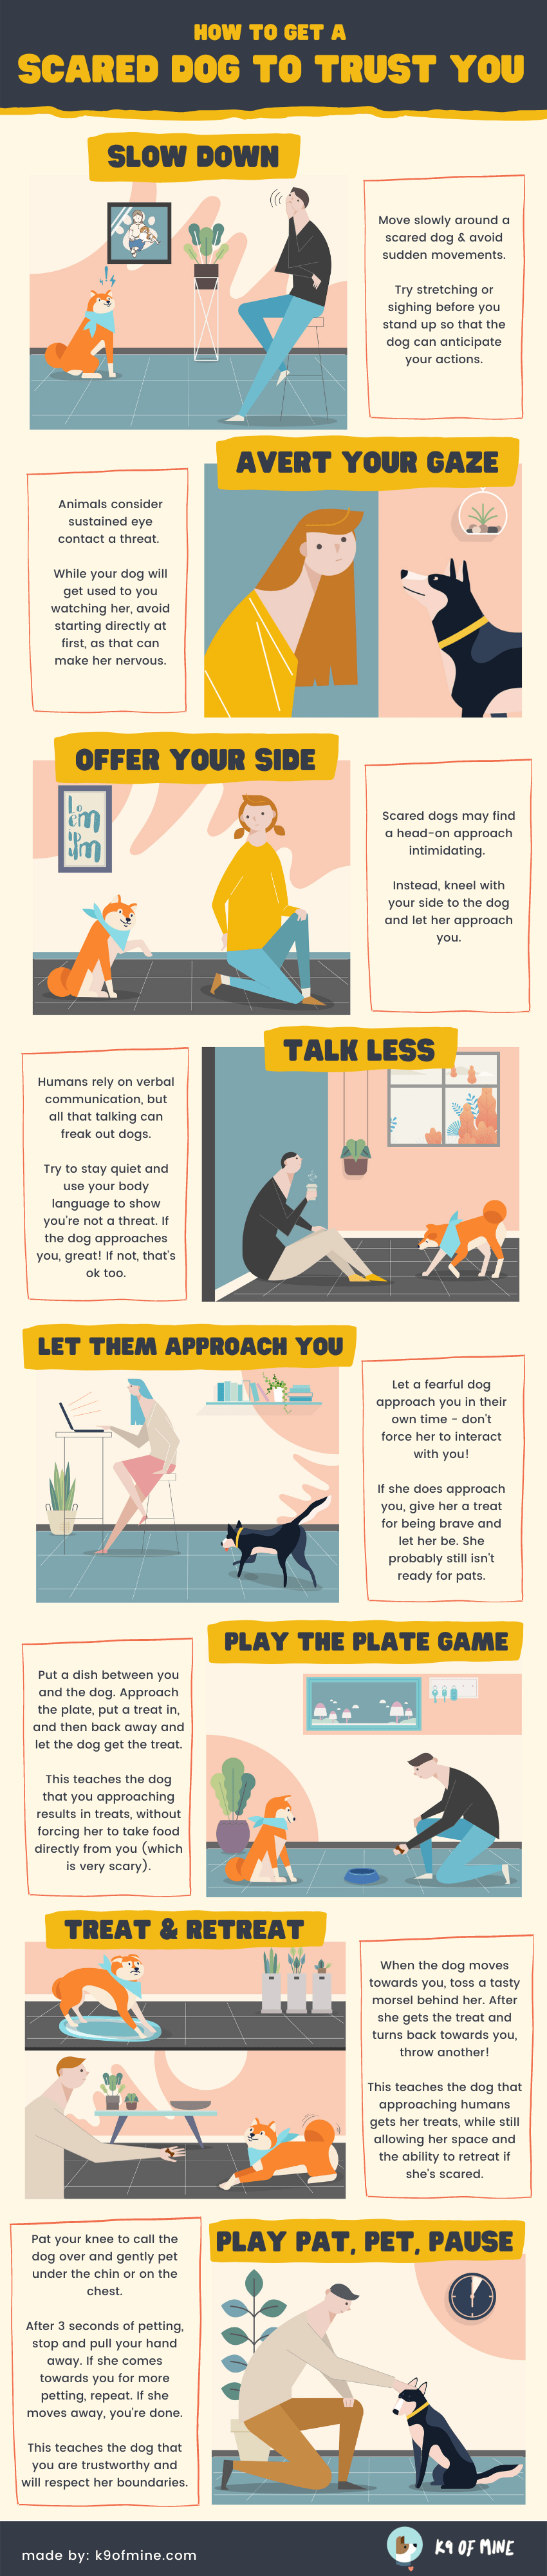 scared dog to trust infographic